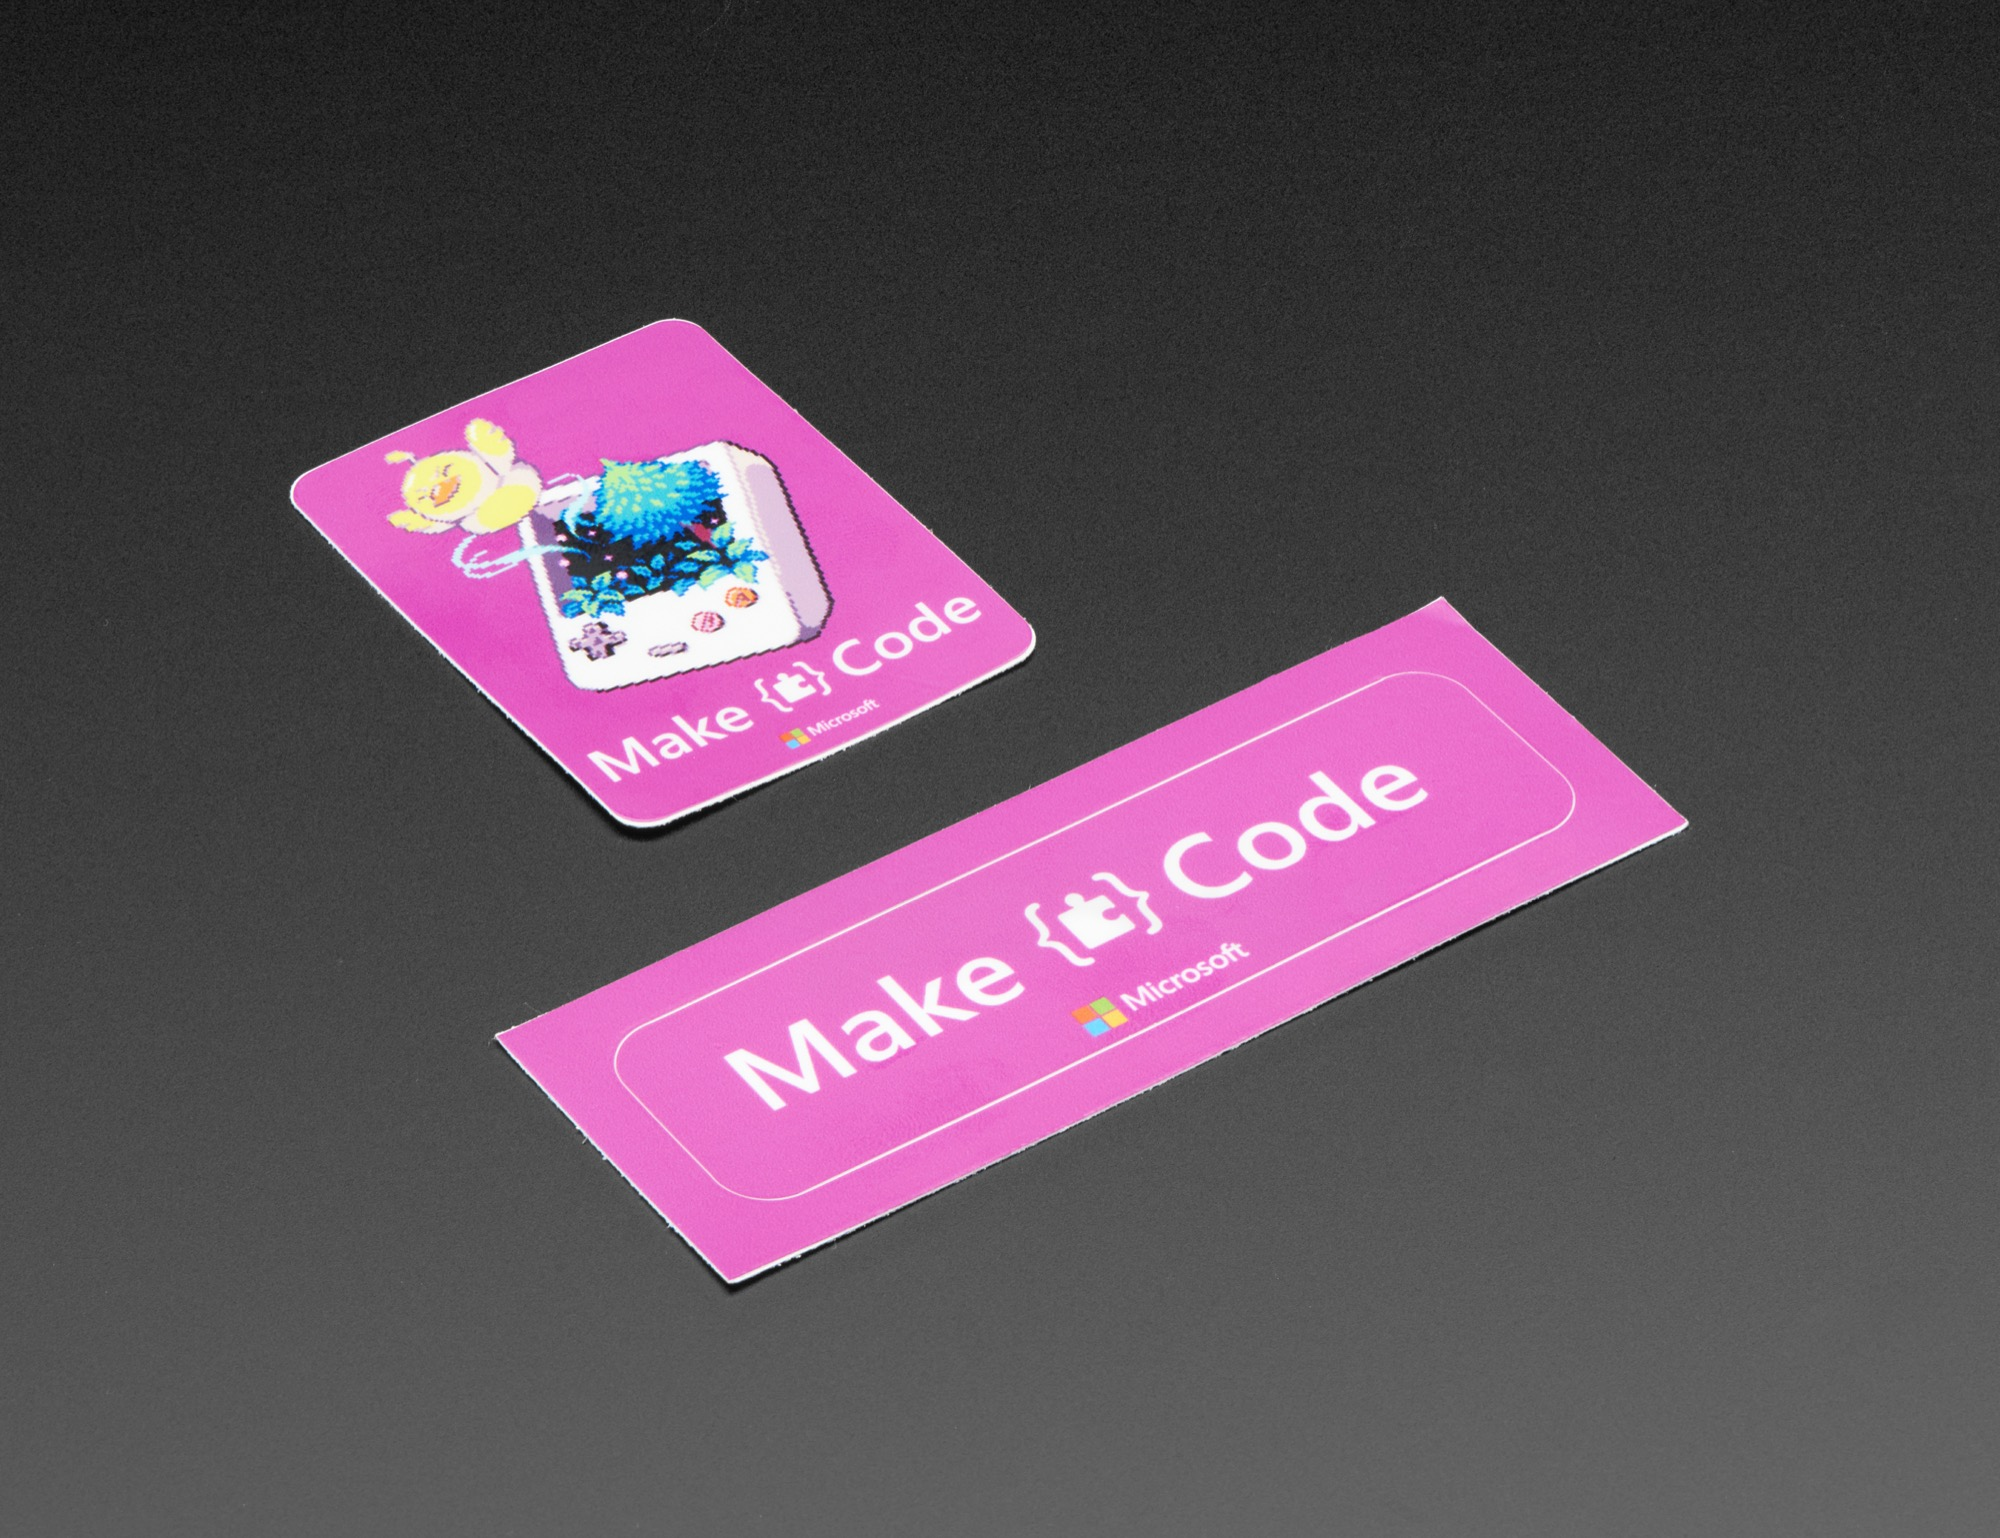 gaming_Make_Code_Stickers_Adabox_12_ORIG.jpg